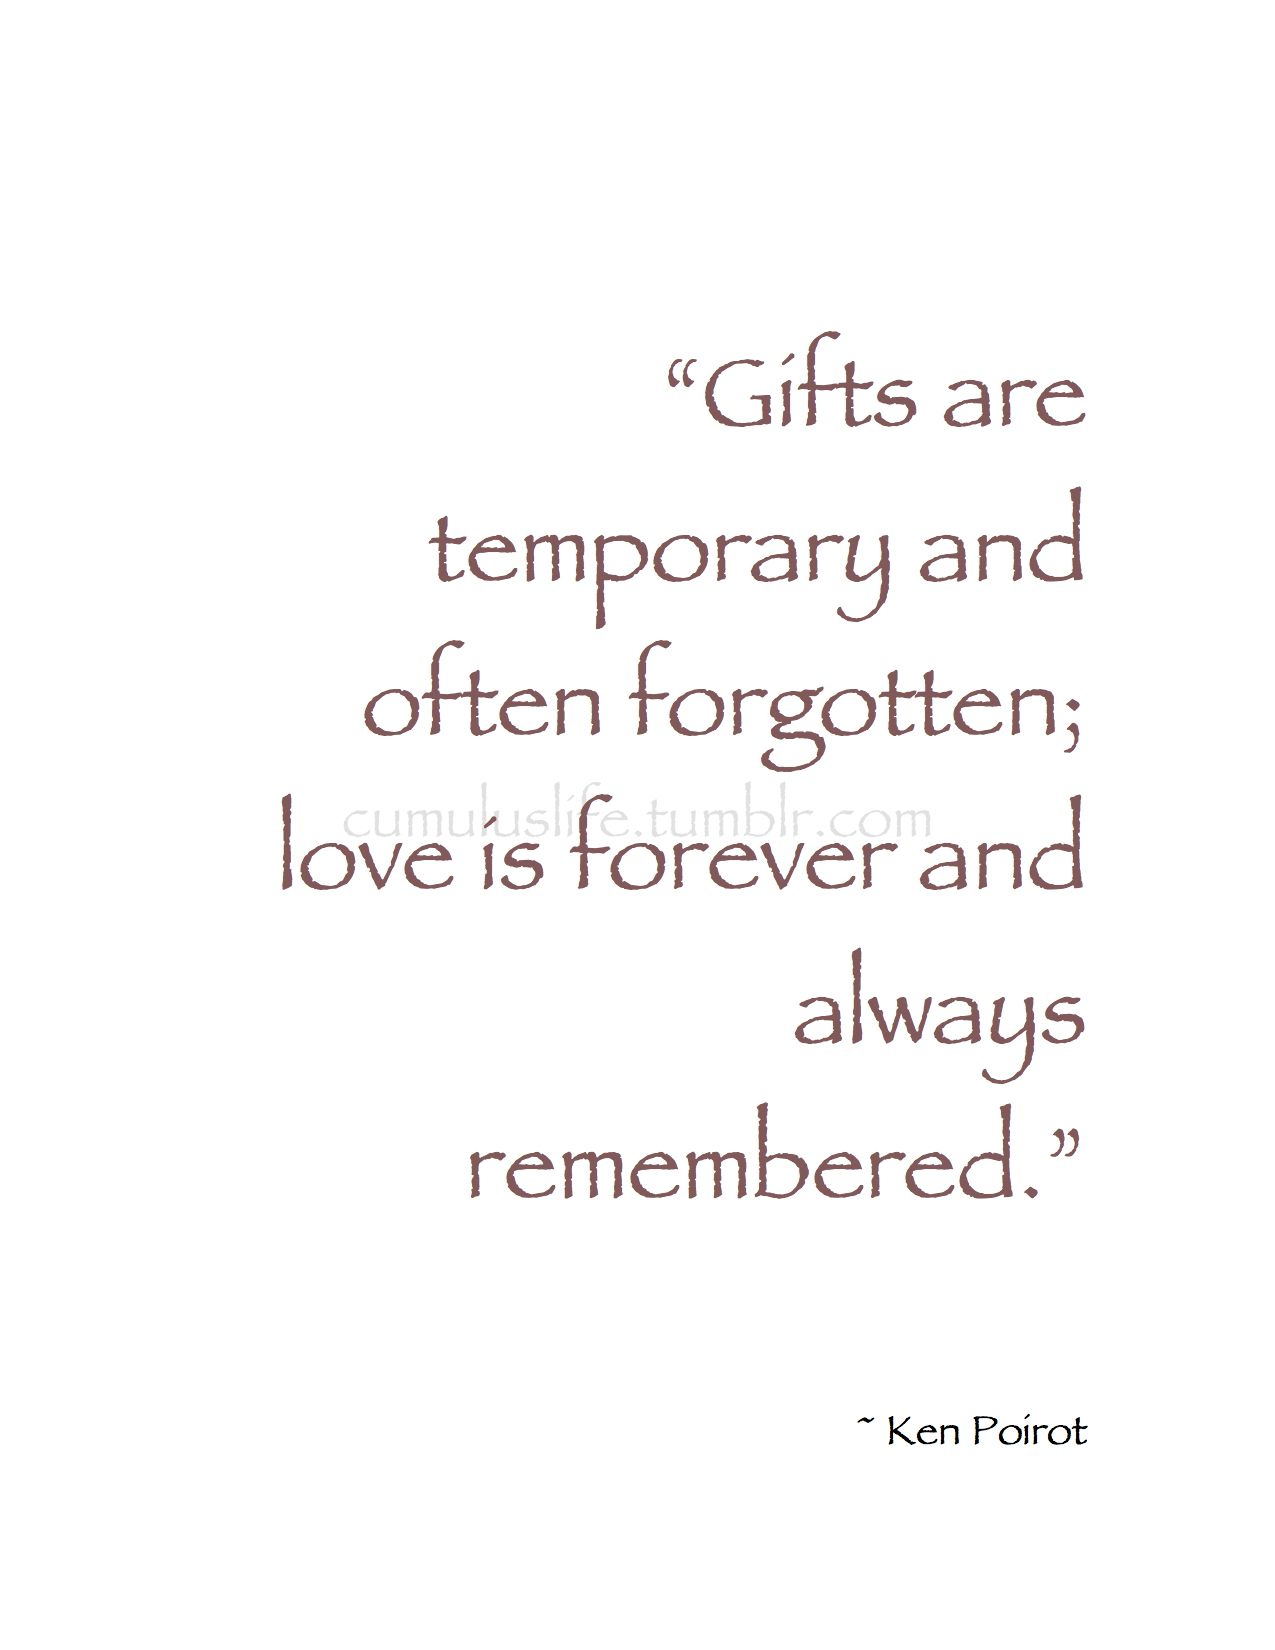 February Gifts Are Temporary And Often Forgotten Love Is Forever And Always Remembered Ken Poirot Affection Q Affection Quotes Always Remember Words